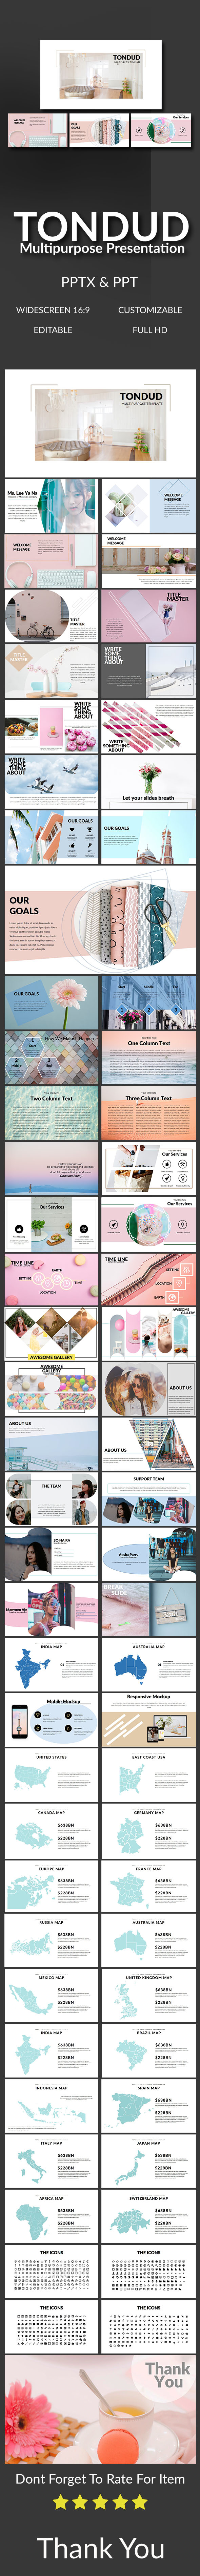 Tondud Multipurpose Presentation - Abstract PowerPoint Templates